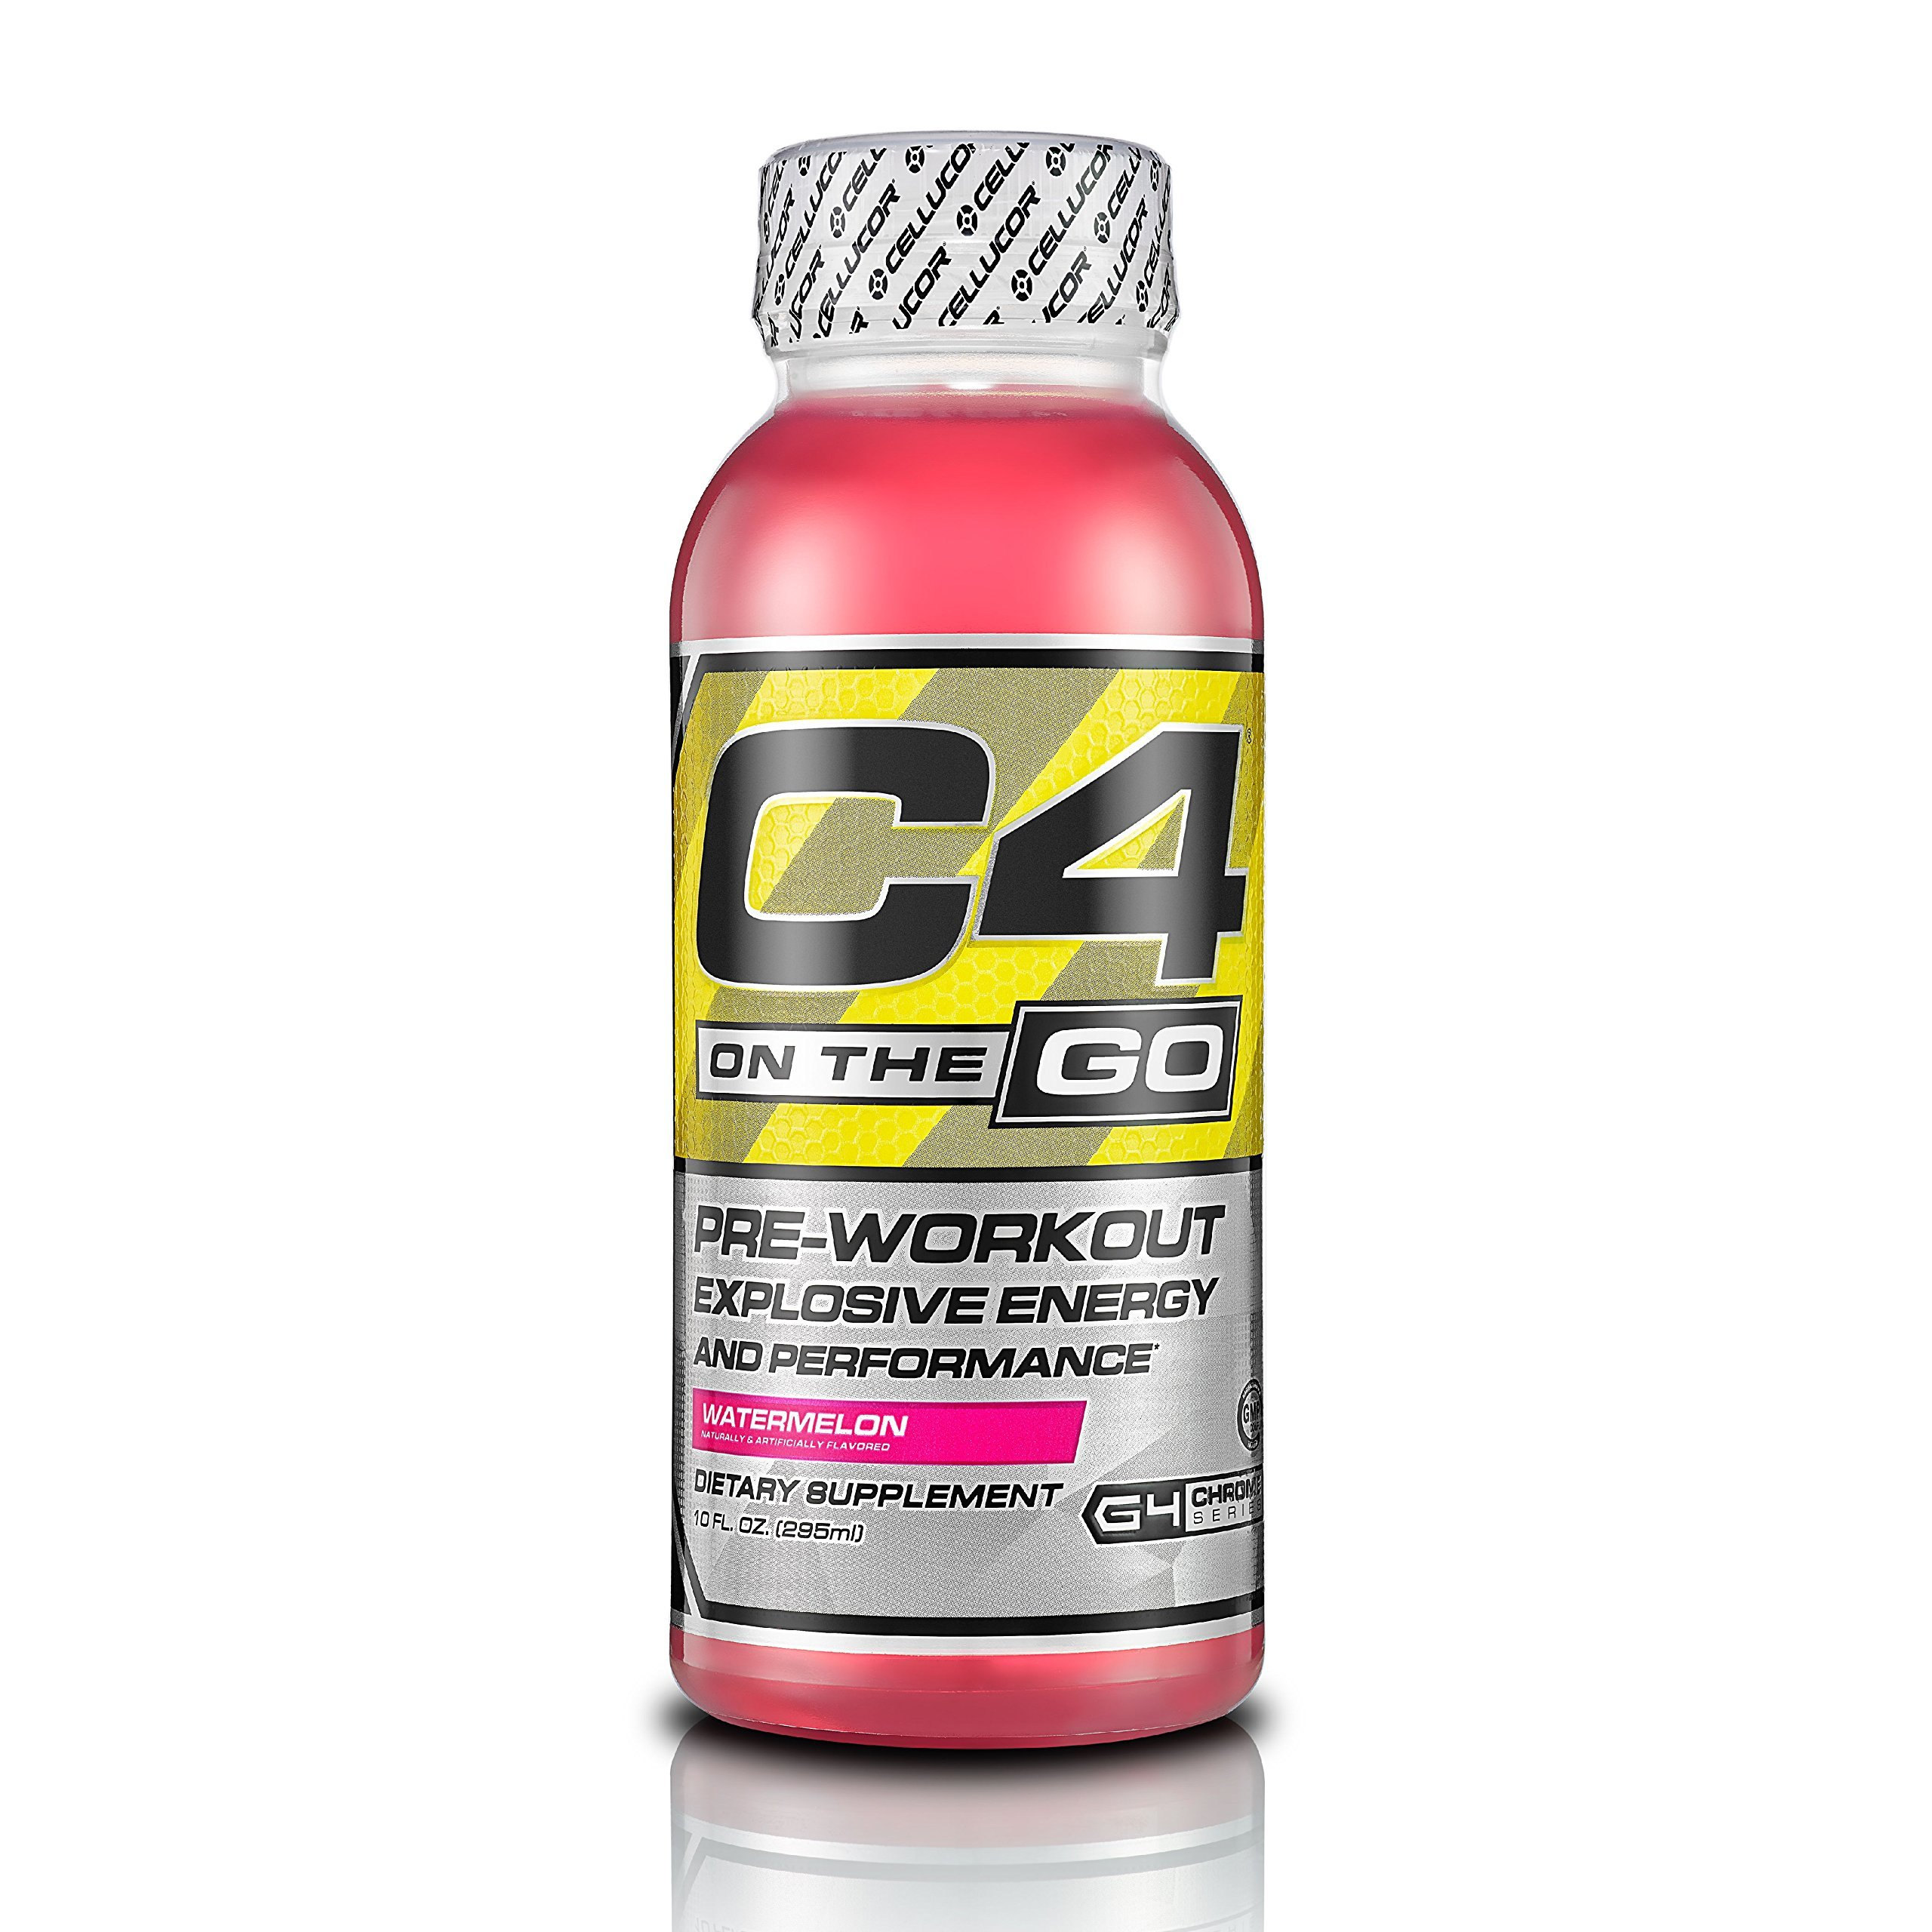 Cellucor C4 On The Go Pre Workout Energy Drink Supplements, Watermelon,10 FL.OZ, 12 Count